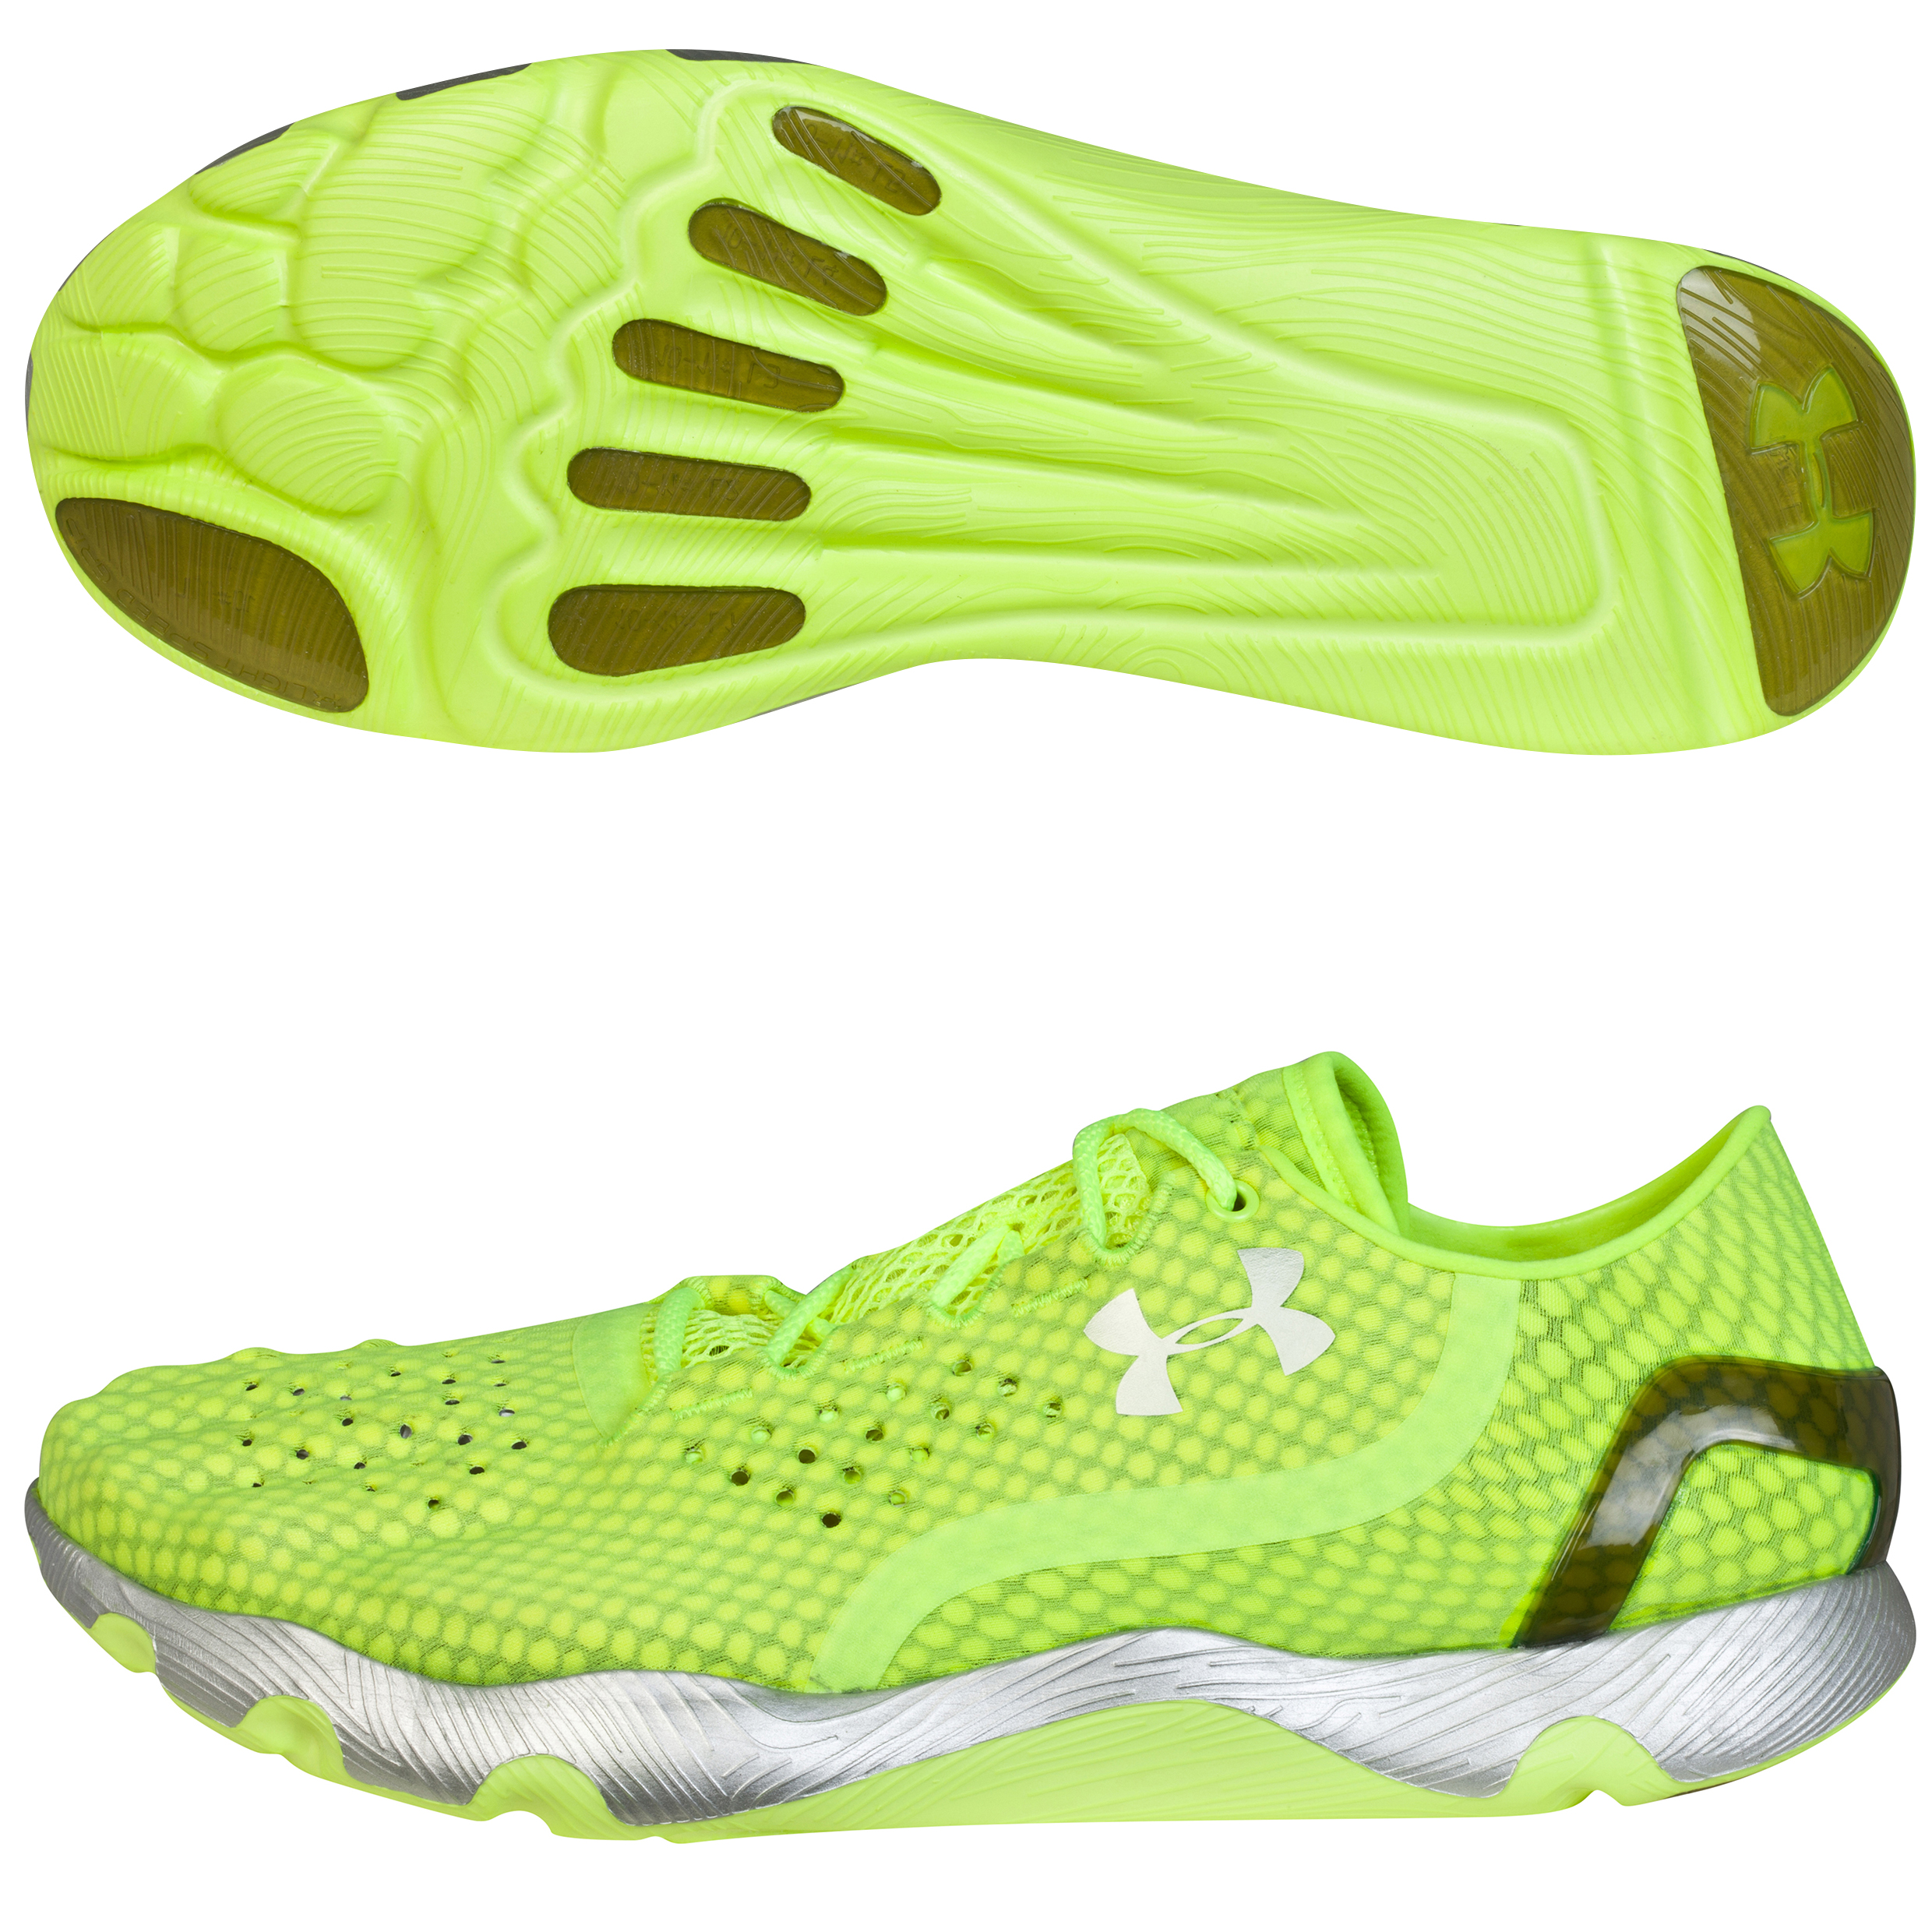 Under Armour Speedform RC Yellow